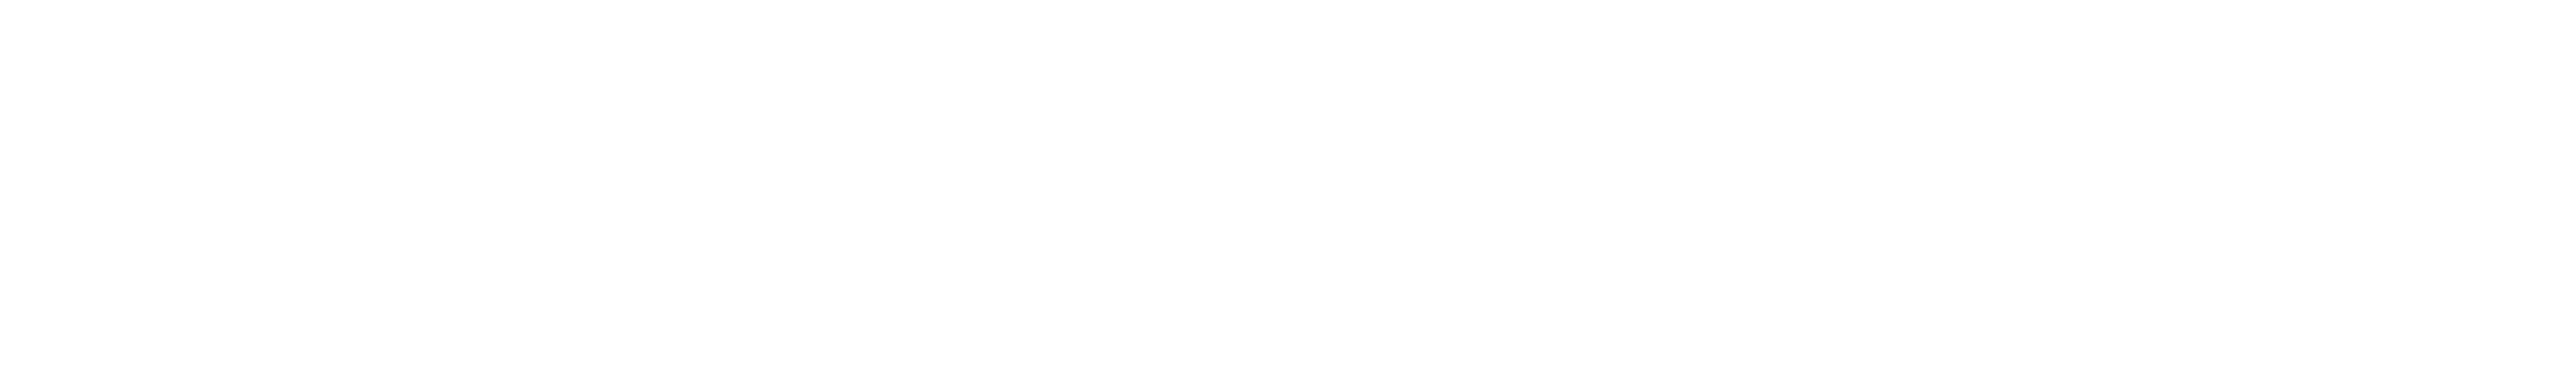 Professional Trust Group Limited Logo